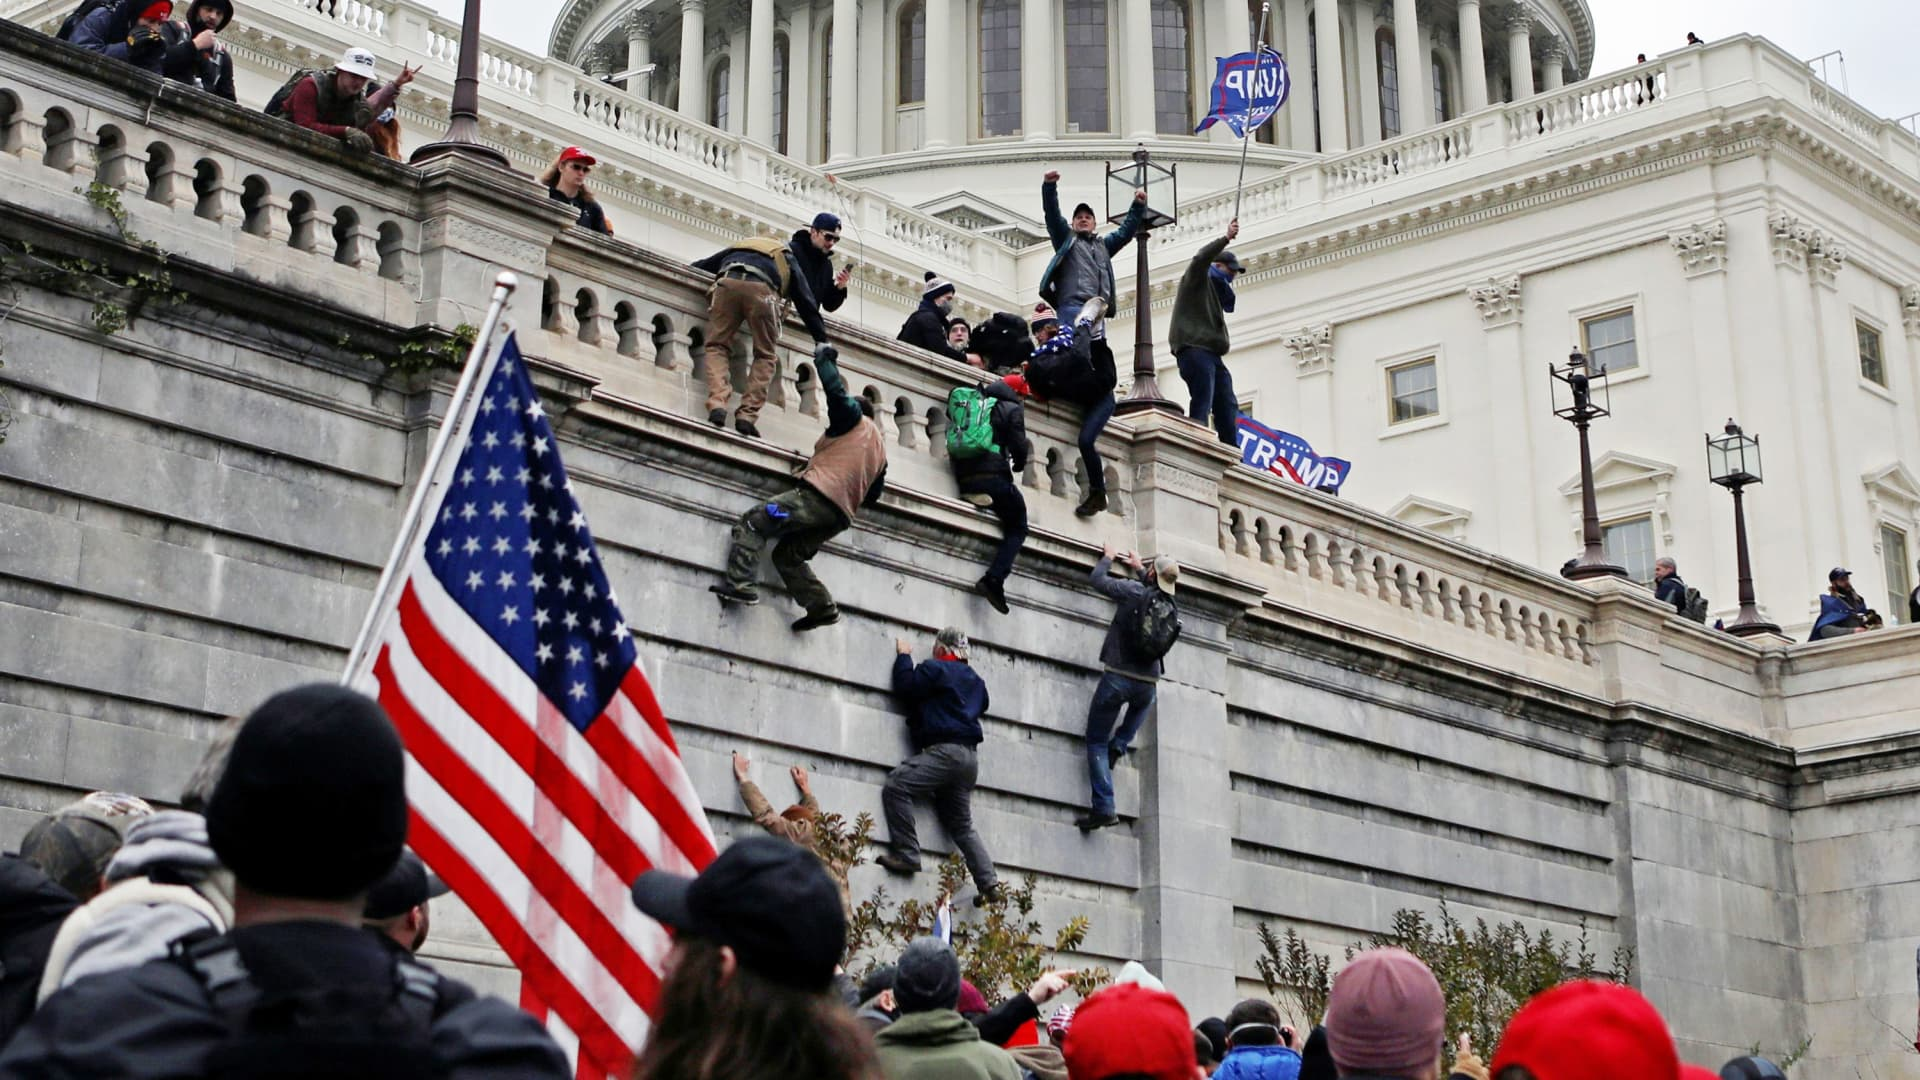 Supporters of U.S. President Donald Trump climb a wall during a protest against the certification of the 2020 presidential election results by the Congress, at the Capitol in Washington, January 6, 2021.